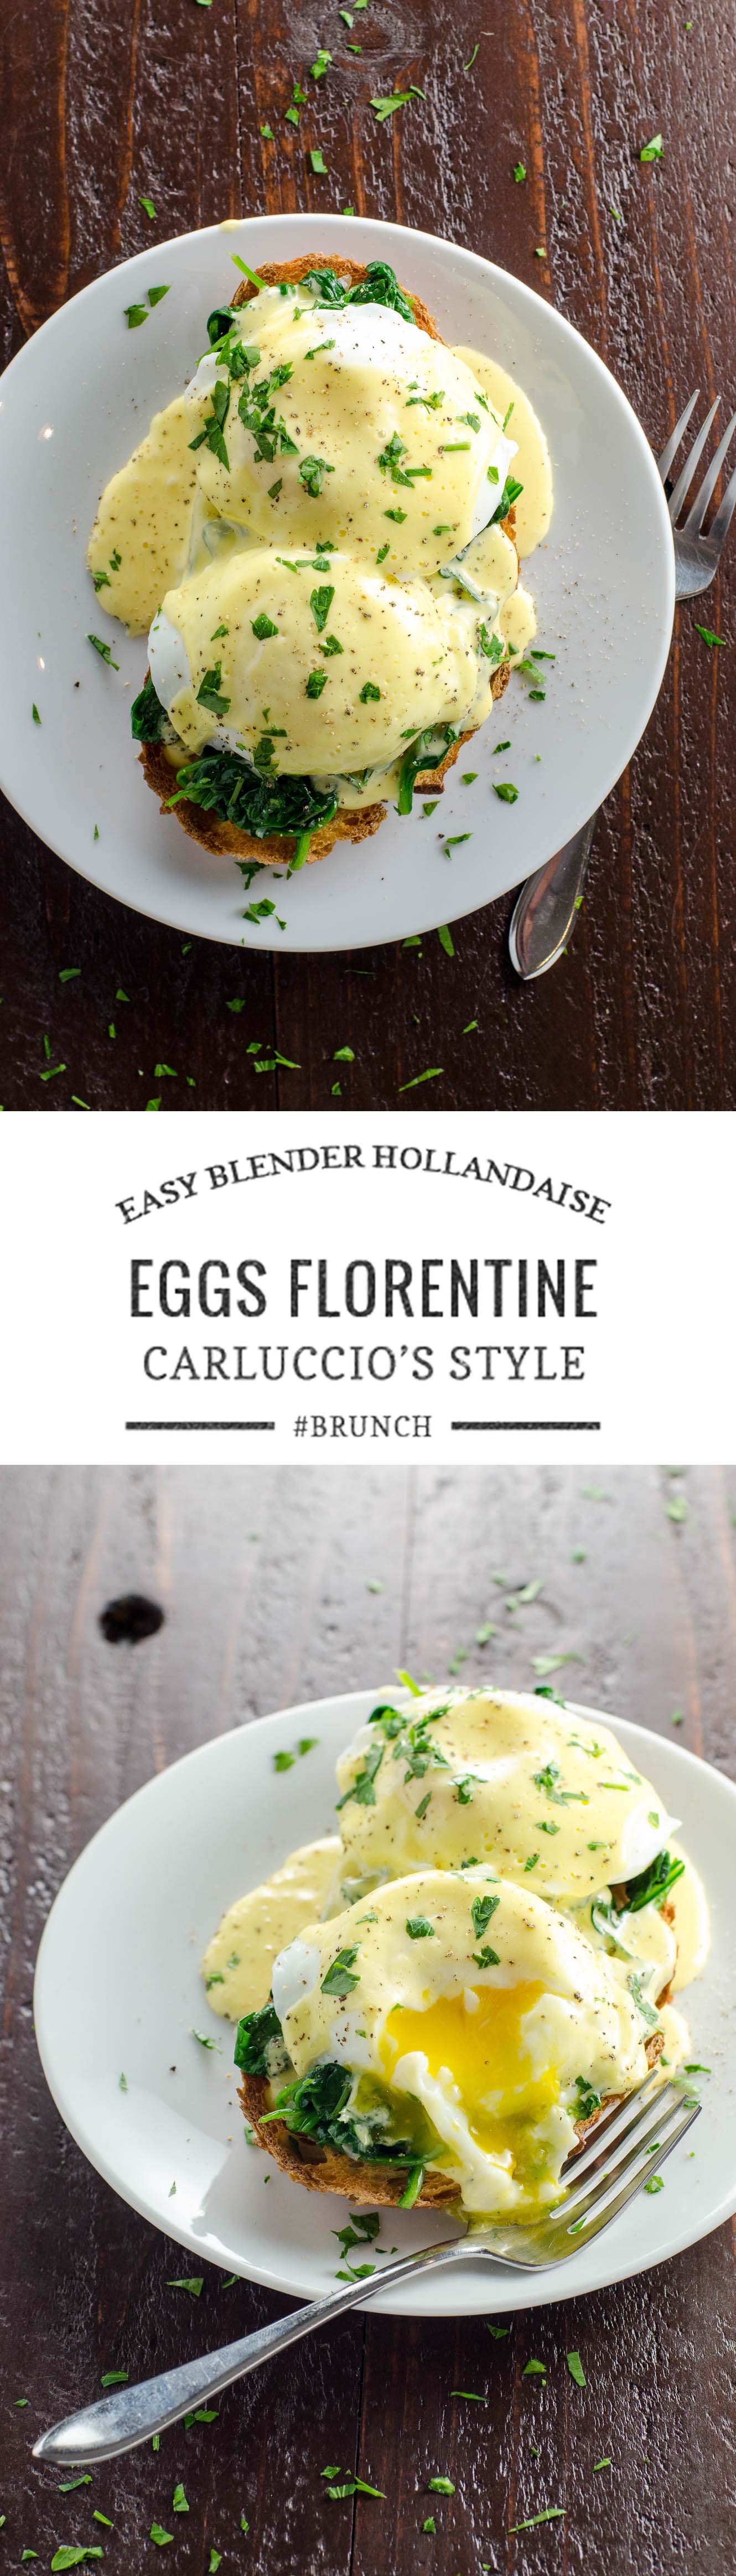 An impressive but easy brunch: Eggs Florentine, inspired by a favorite tradition from our London days.